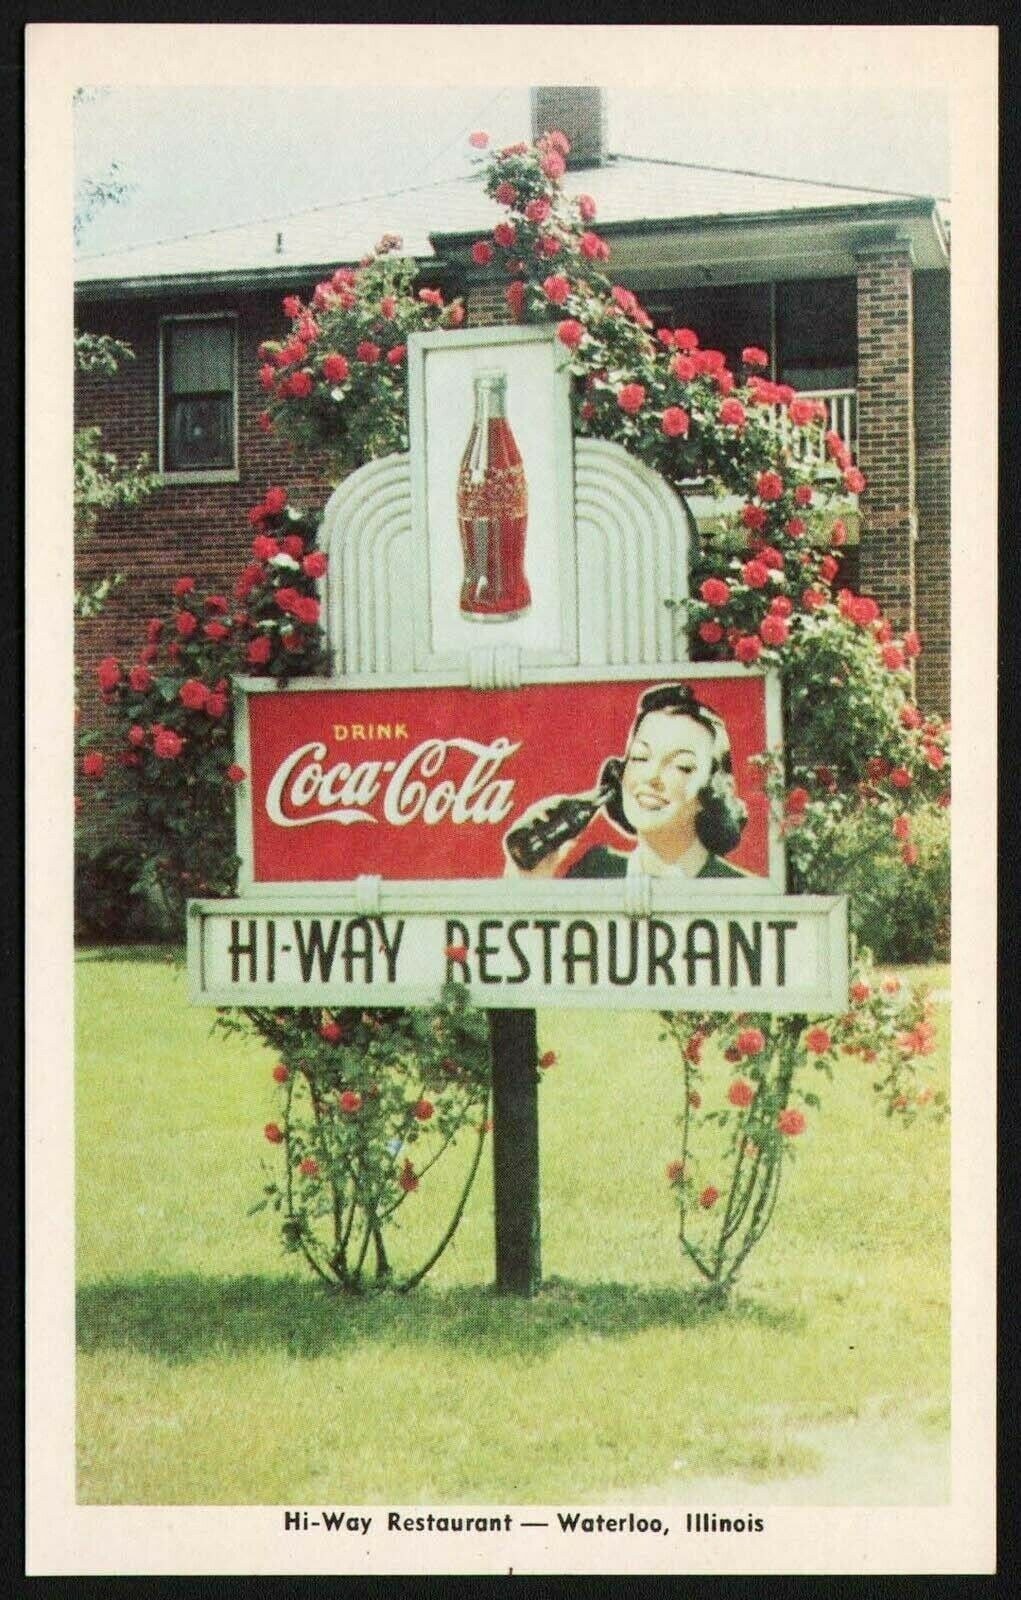 Primary image for Vintage postcard HI WAY RESTAURANT Waterloo Illinois nice Coca Cola sign picture